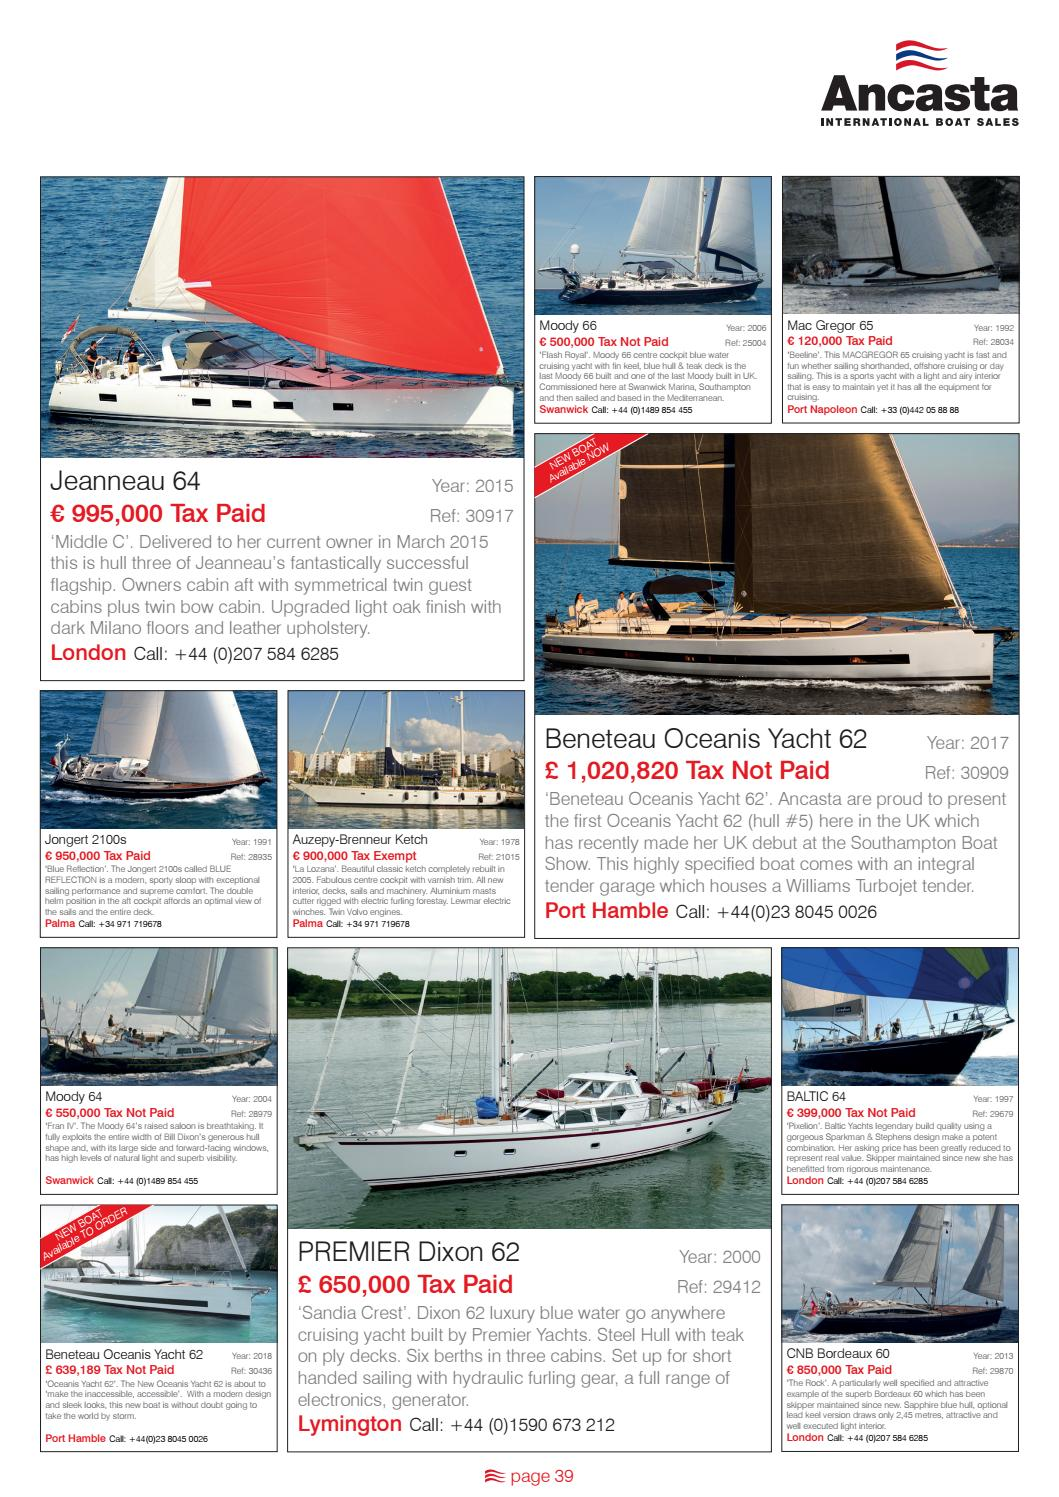 ab16401723 18 ancasta winter collection issuu by Ancasta International Boat Sales -  issuu